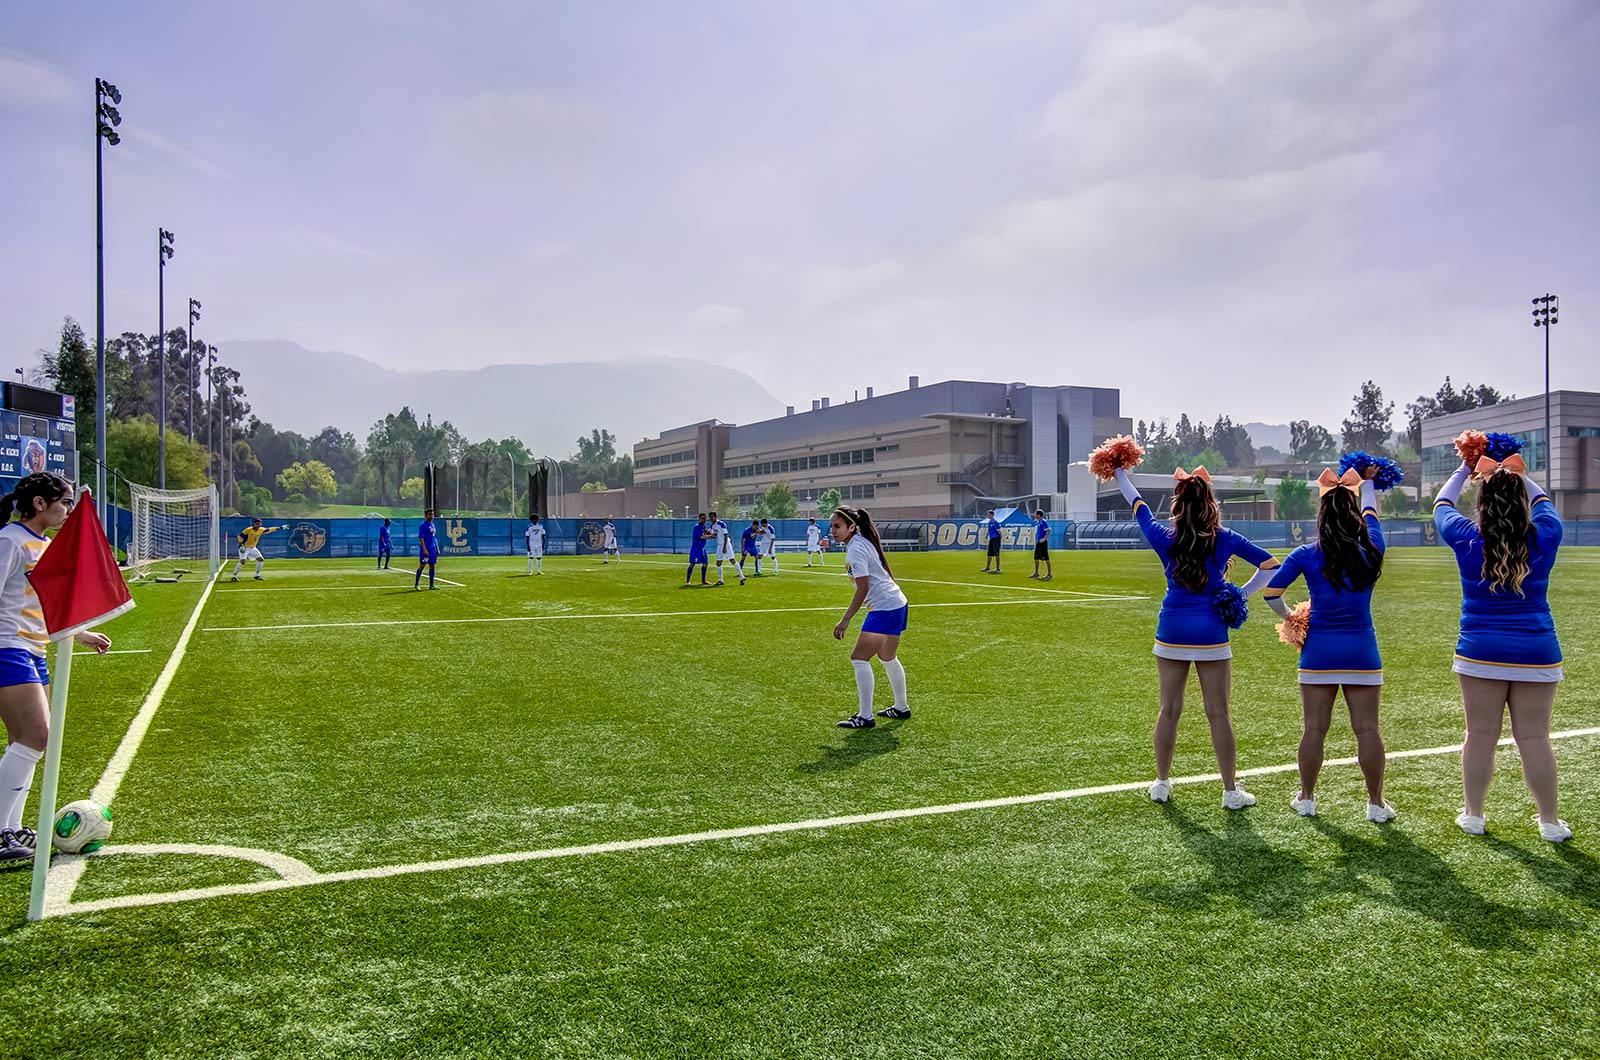 UCR-Soccer-Game-360-Tours-Virtual-Tour-Company-College-Vitual-Tours-Virtual-Tours-For-College